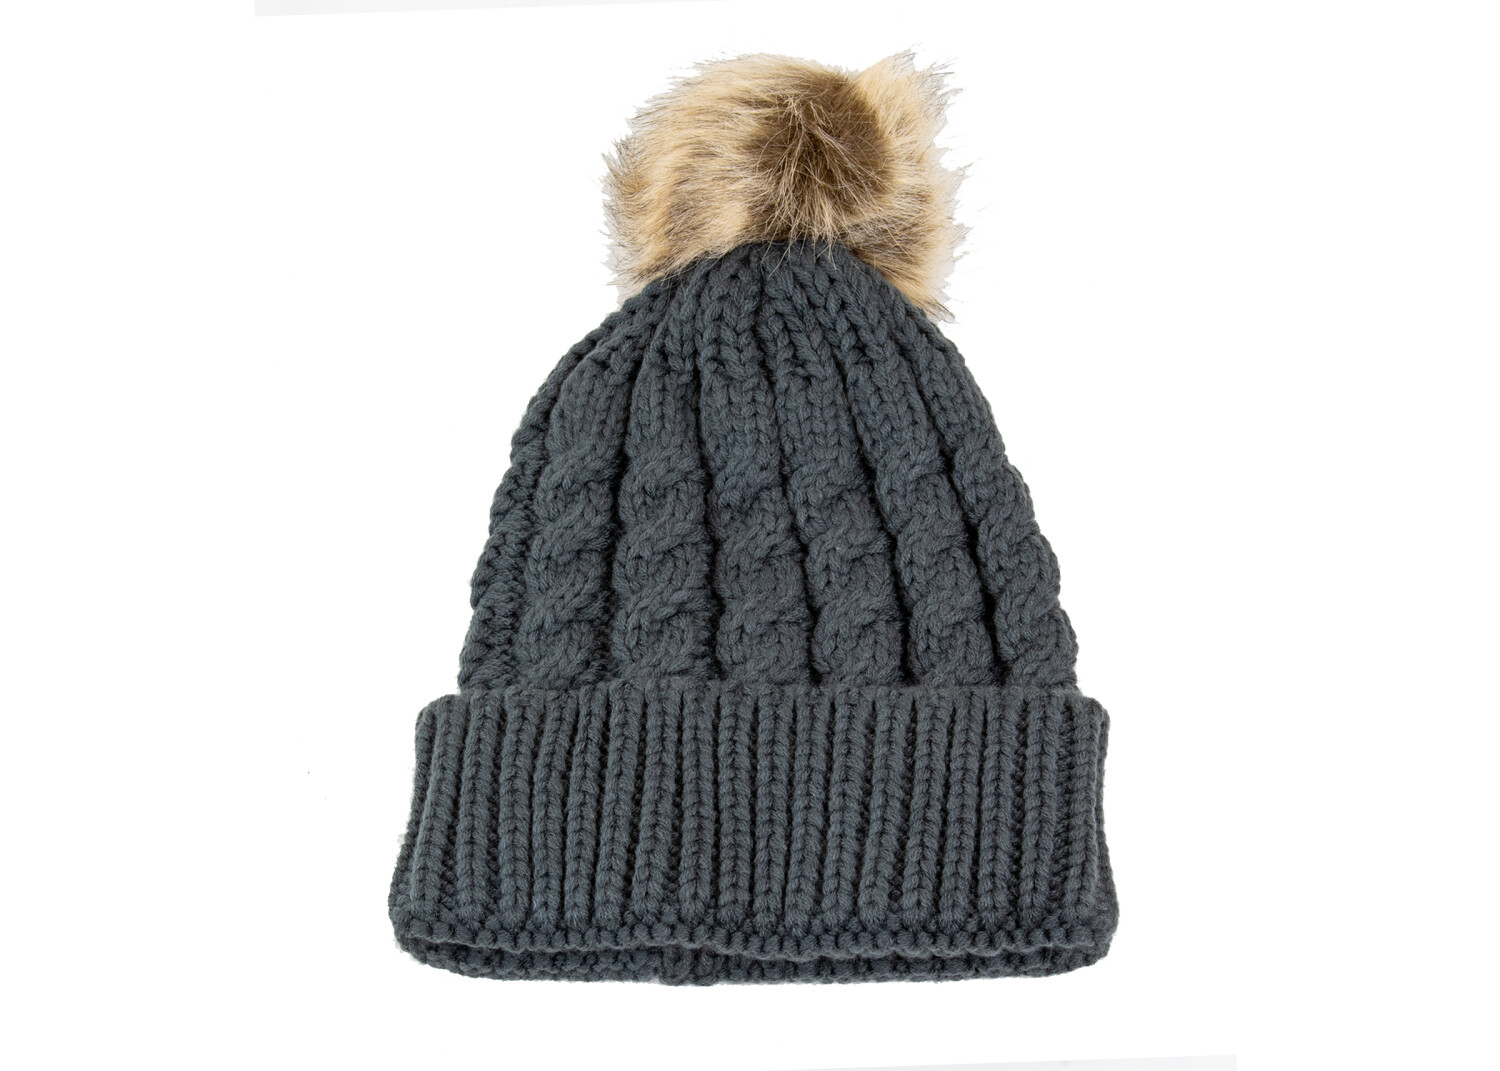 Exotic Identity Pom Pom Hat Cable Knit Arctic Cold Weather Wear for Women - M - Grey